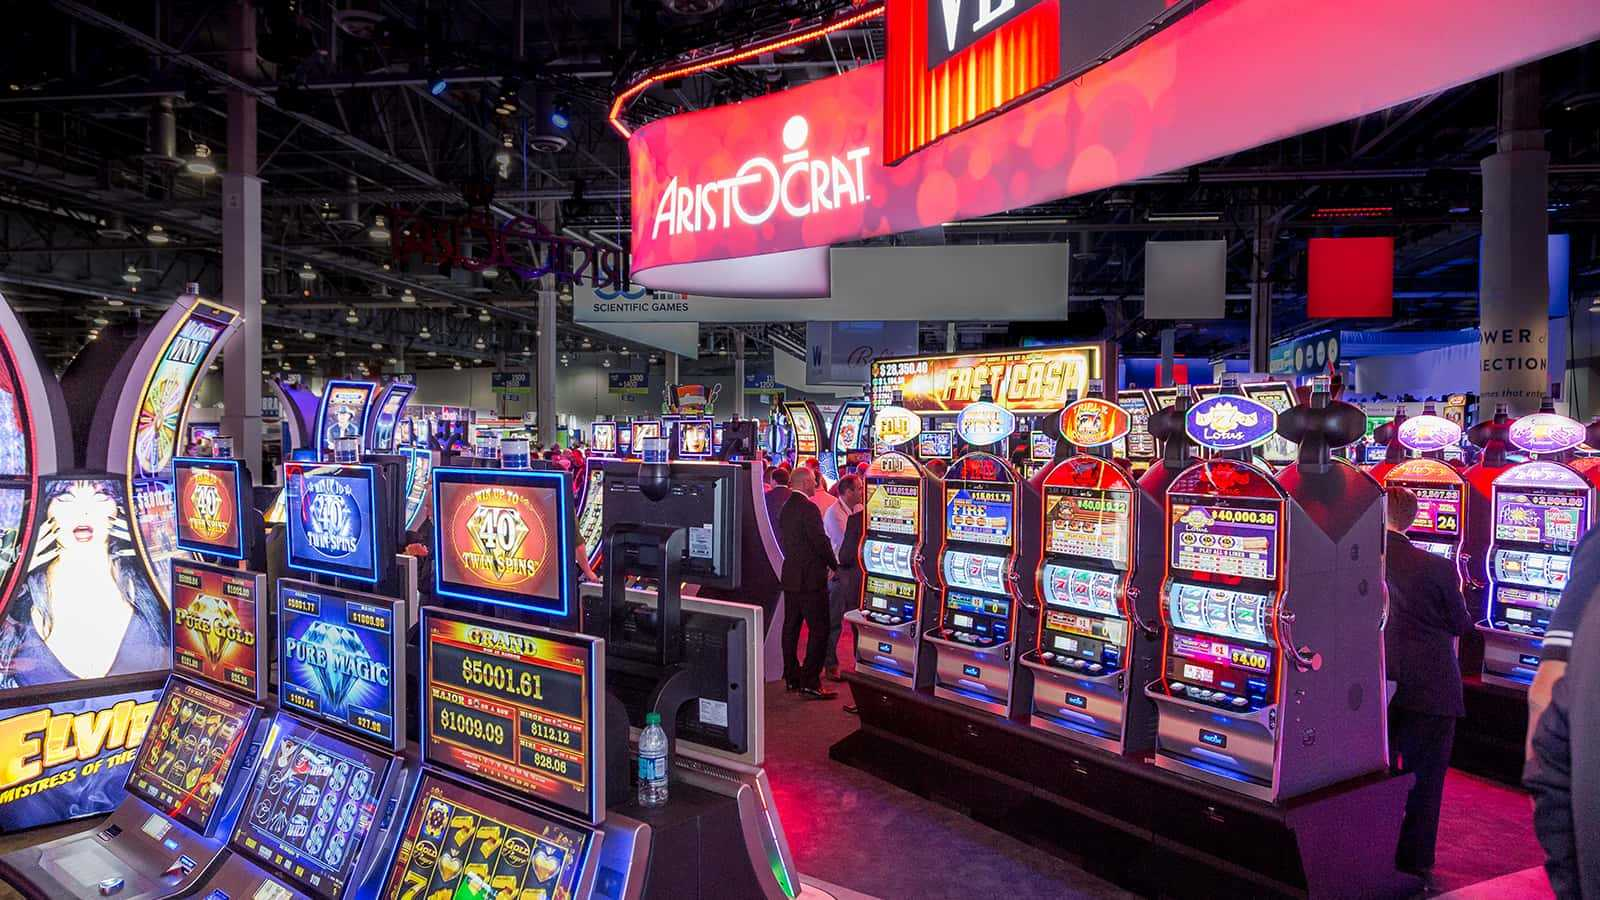 An inside look at the slot machines at Aristocrat G2E in 2016.